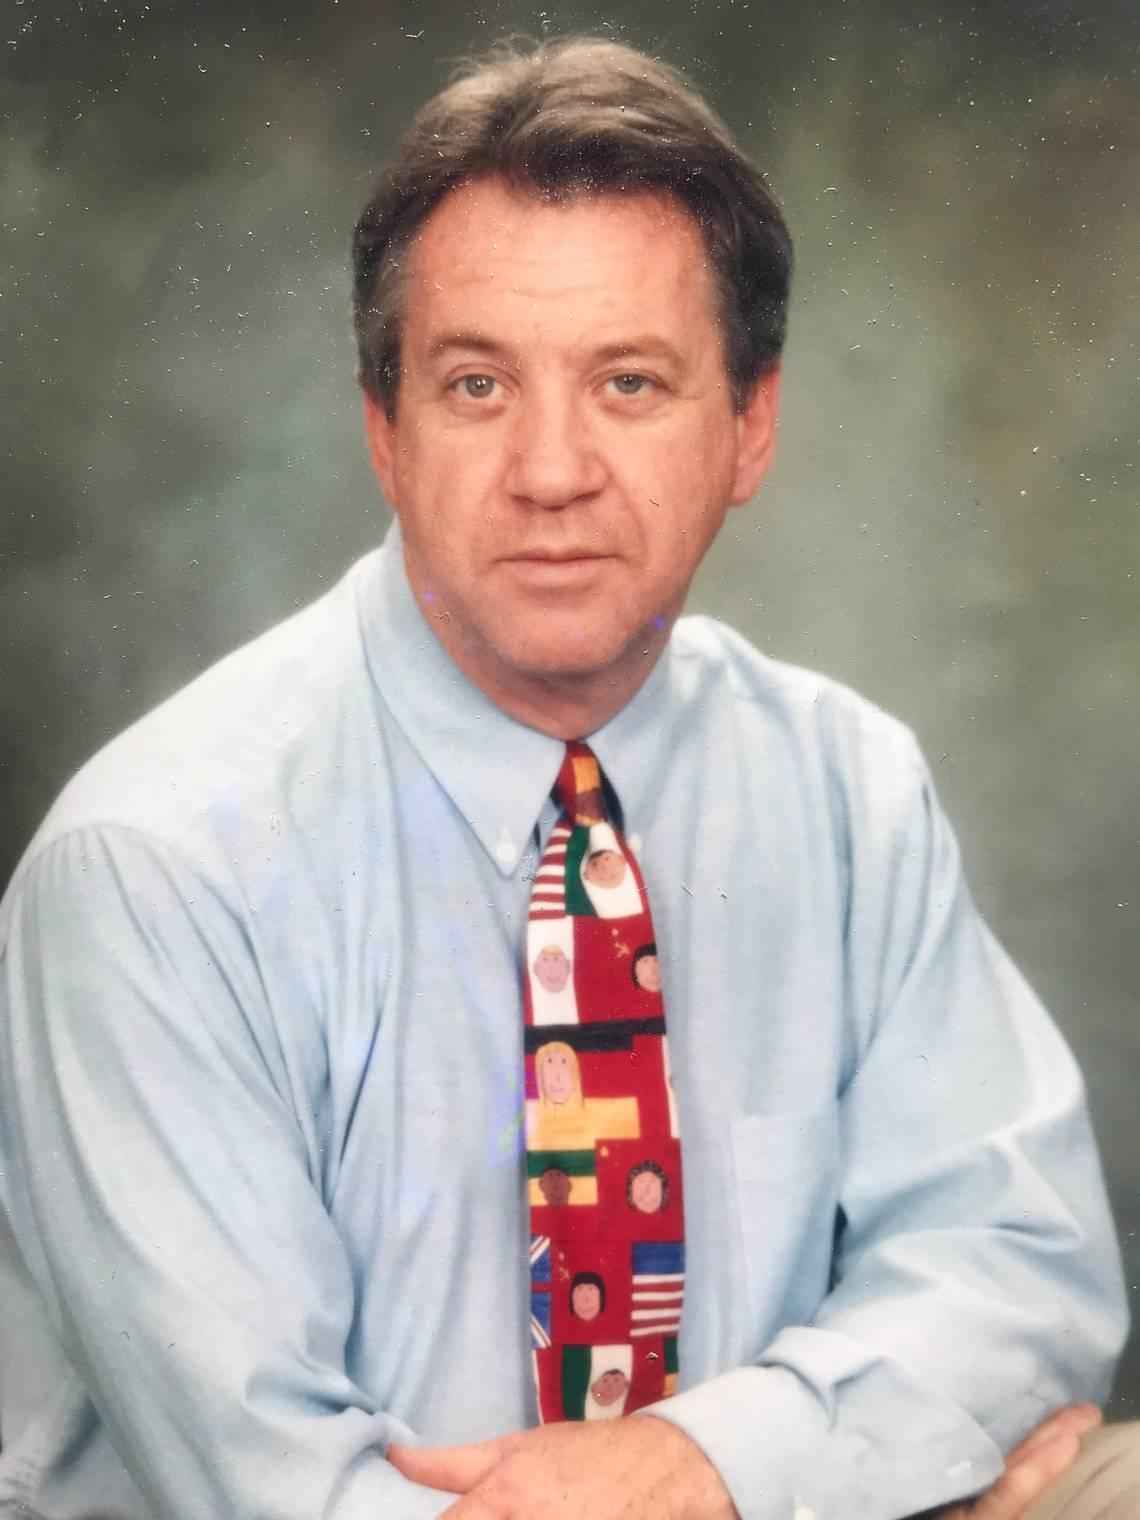 Paul Lucas Jr. died in a shelter for people with special medical needs Sept. 17. He was a longtime teacher in New Hanover County schools.